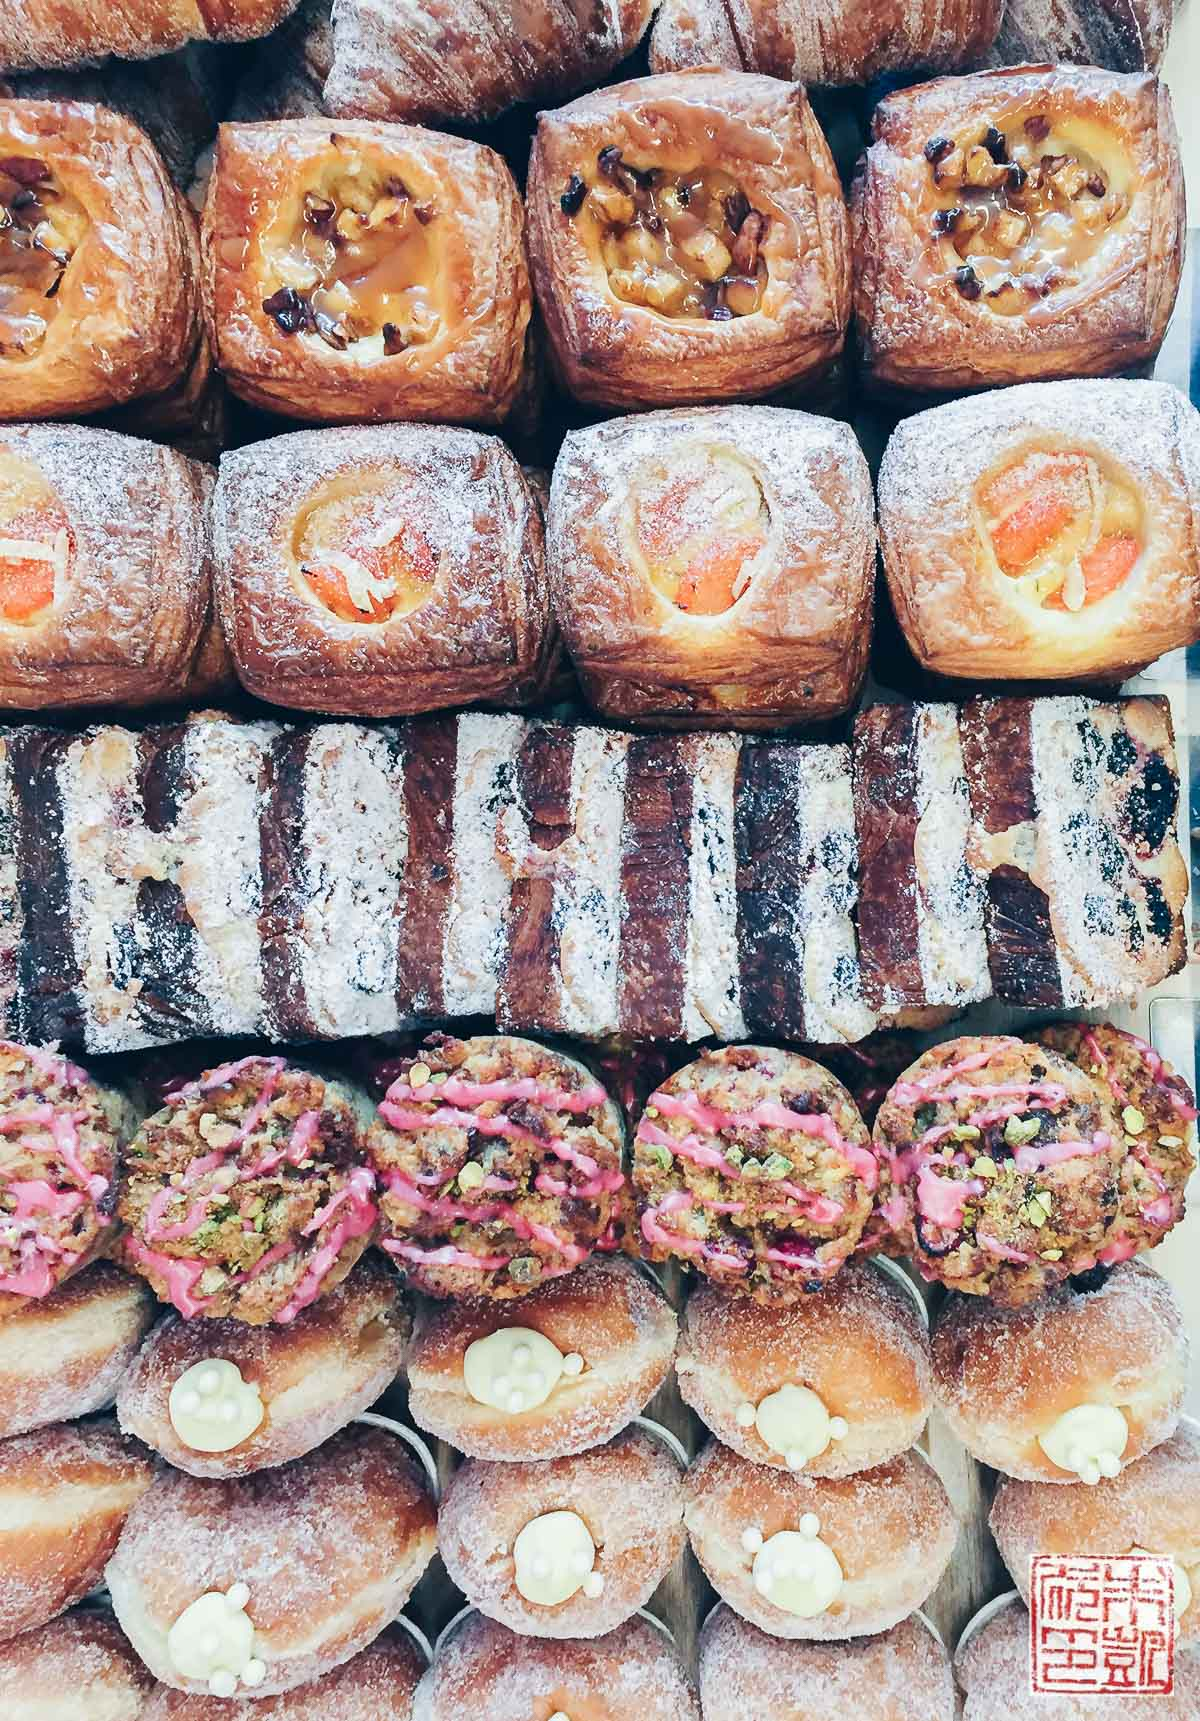 mr-holmes-bakehouse-pastries